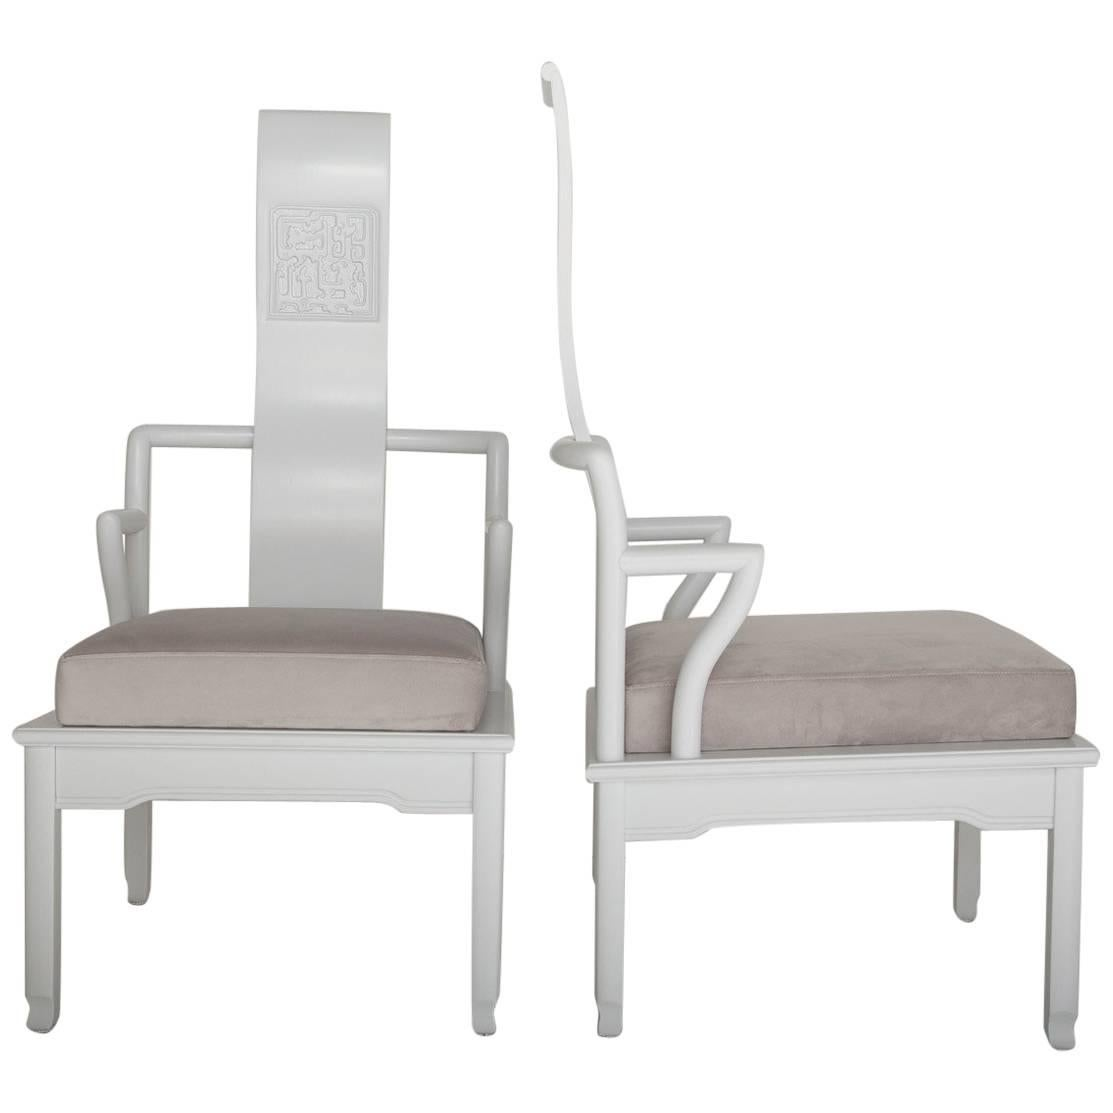 Exceptionnel Pair Of Low Asian Inspired Accent Chairs In The Manner Of James Mont For  Sale